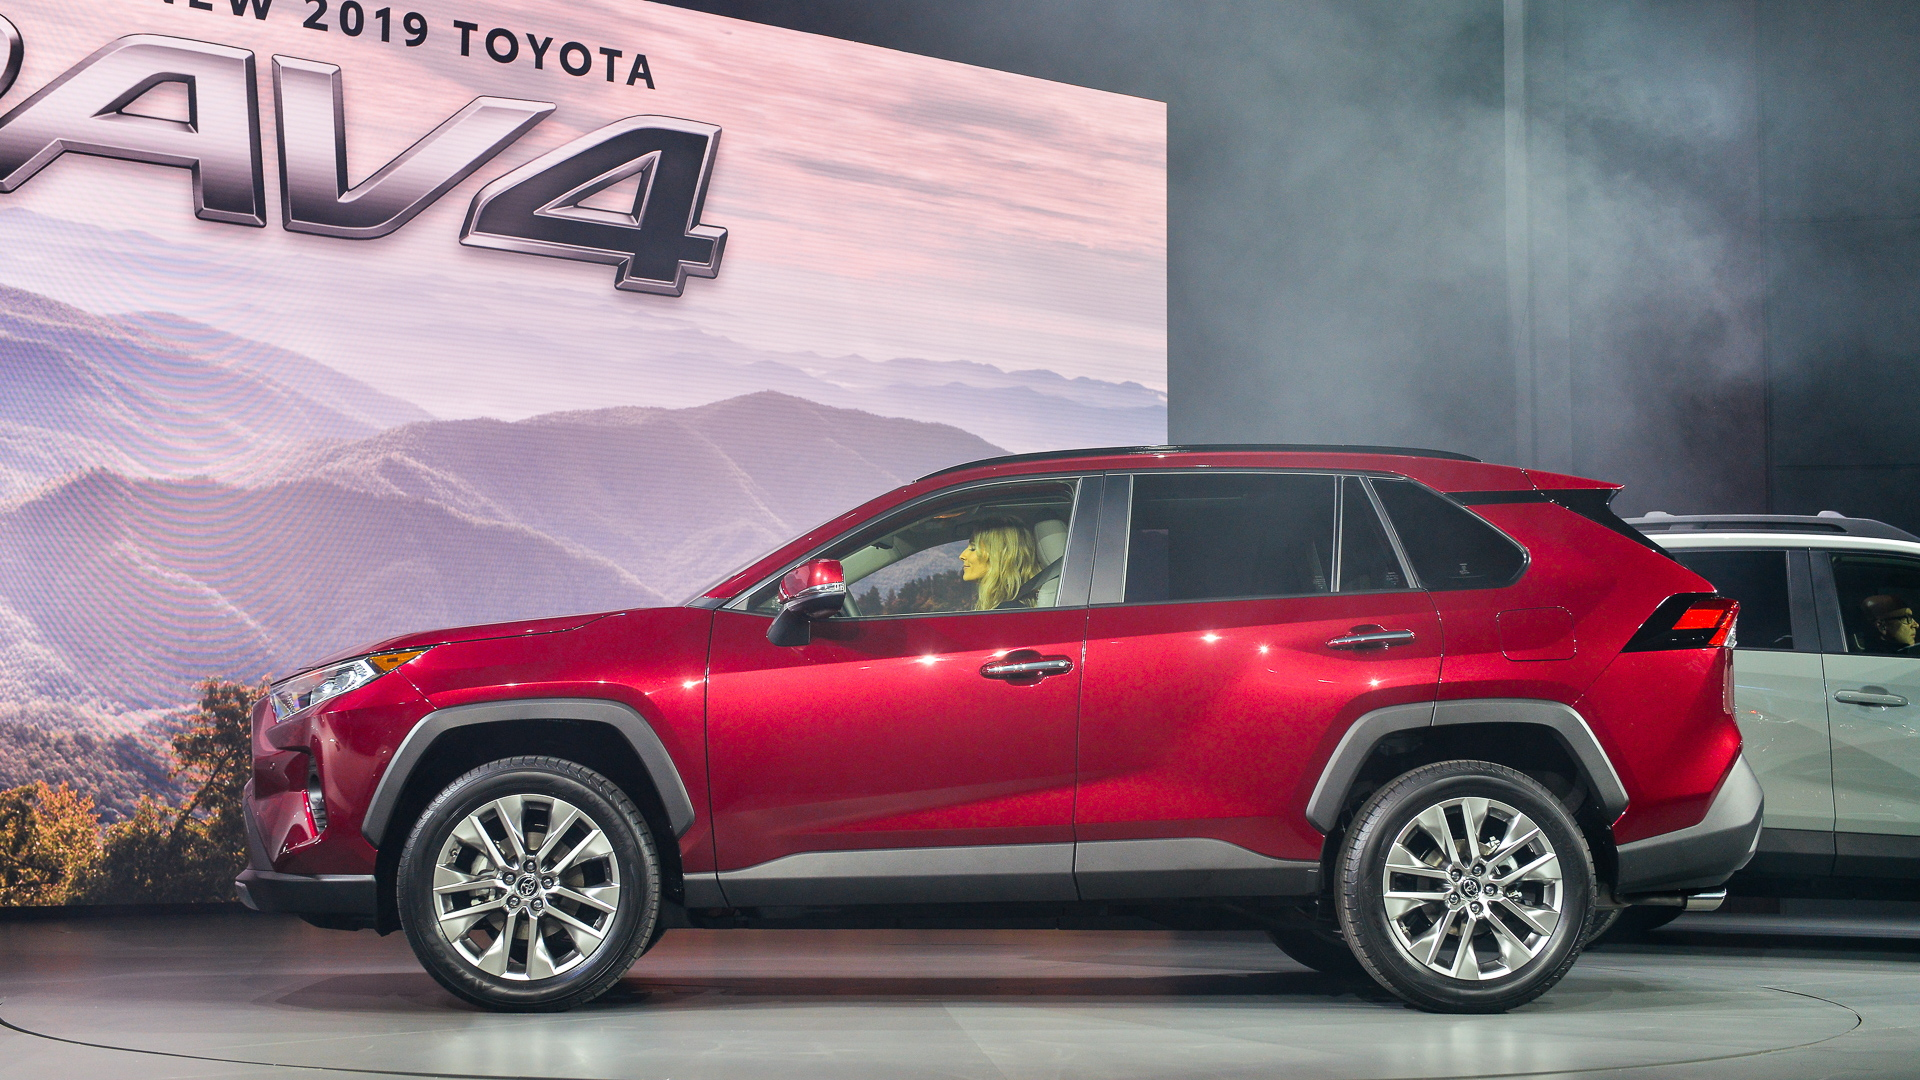 2019 Toyota Rav4 Takes On Tough New Look